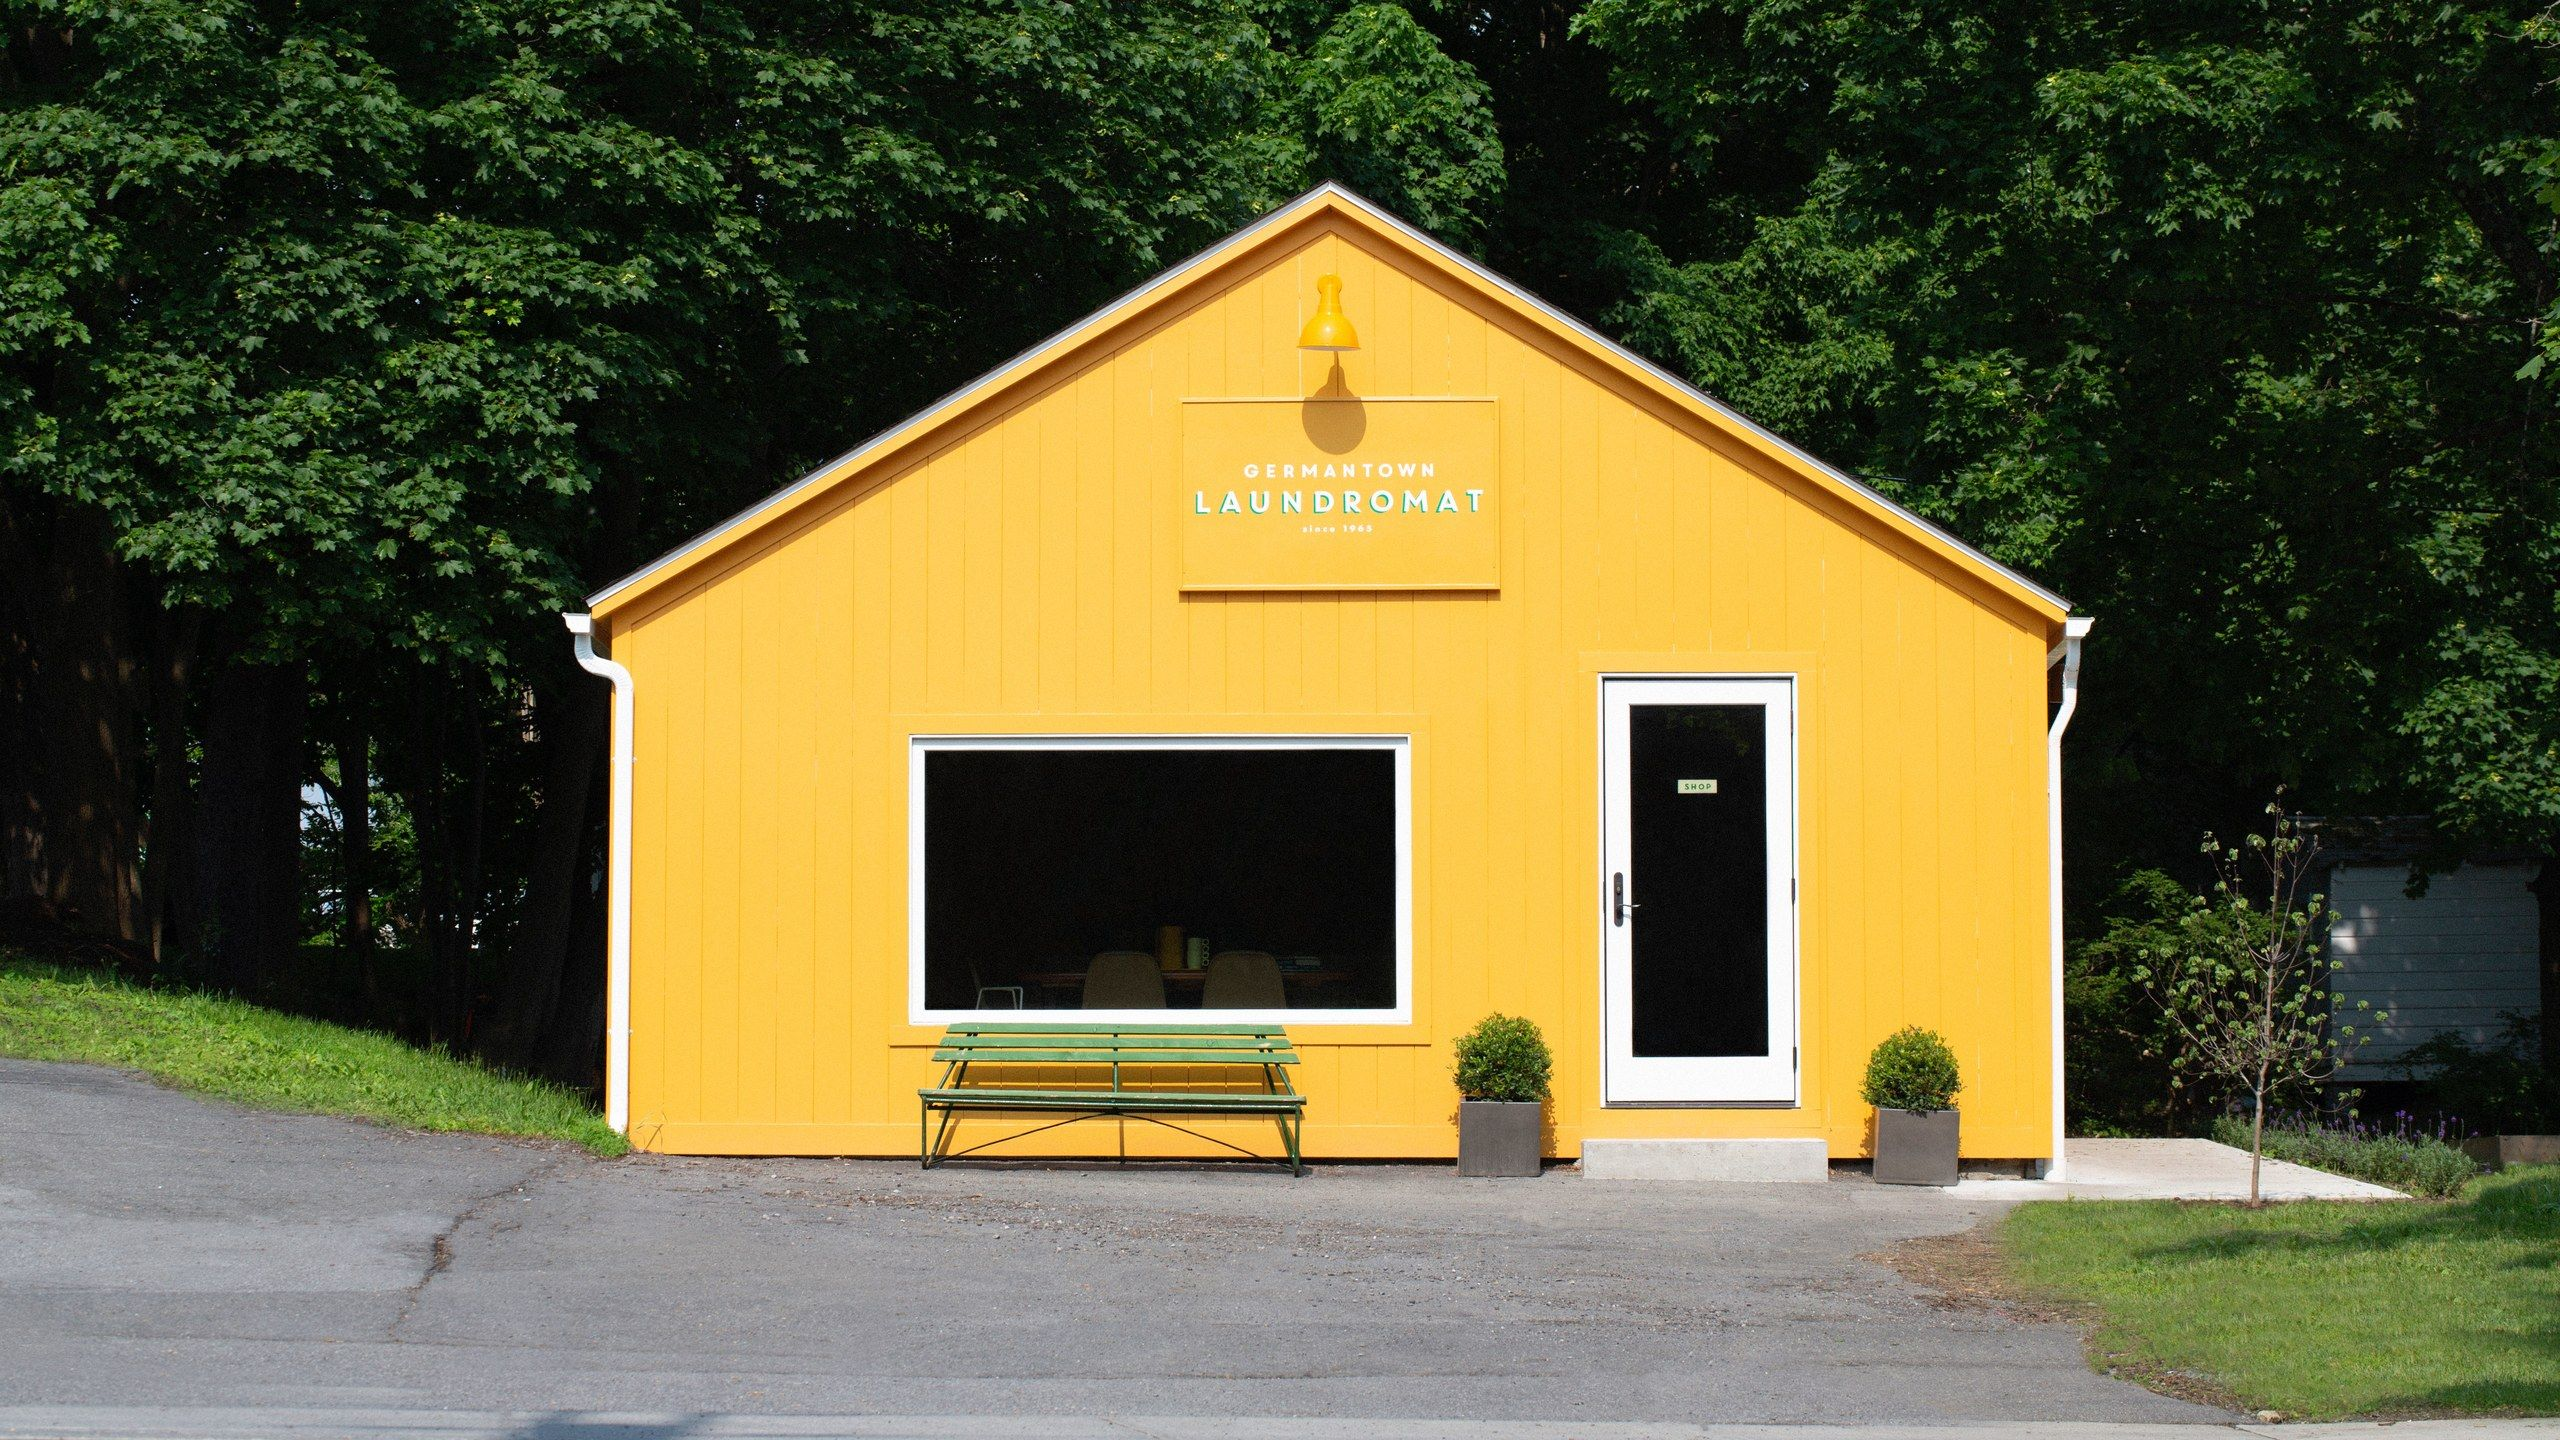 This Bright Yellow Laundromat Will Inspire You to Live